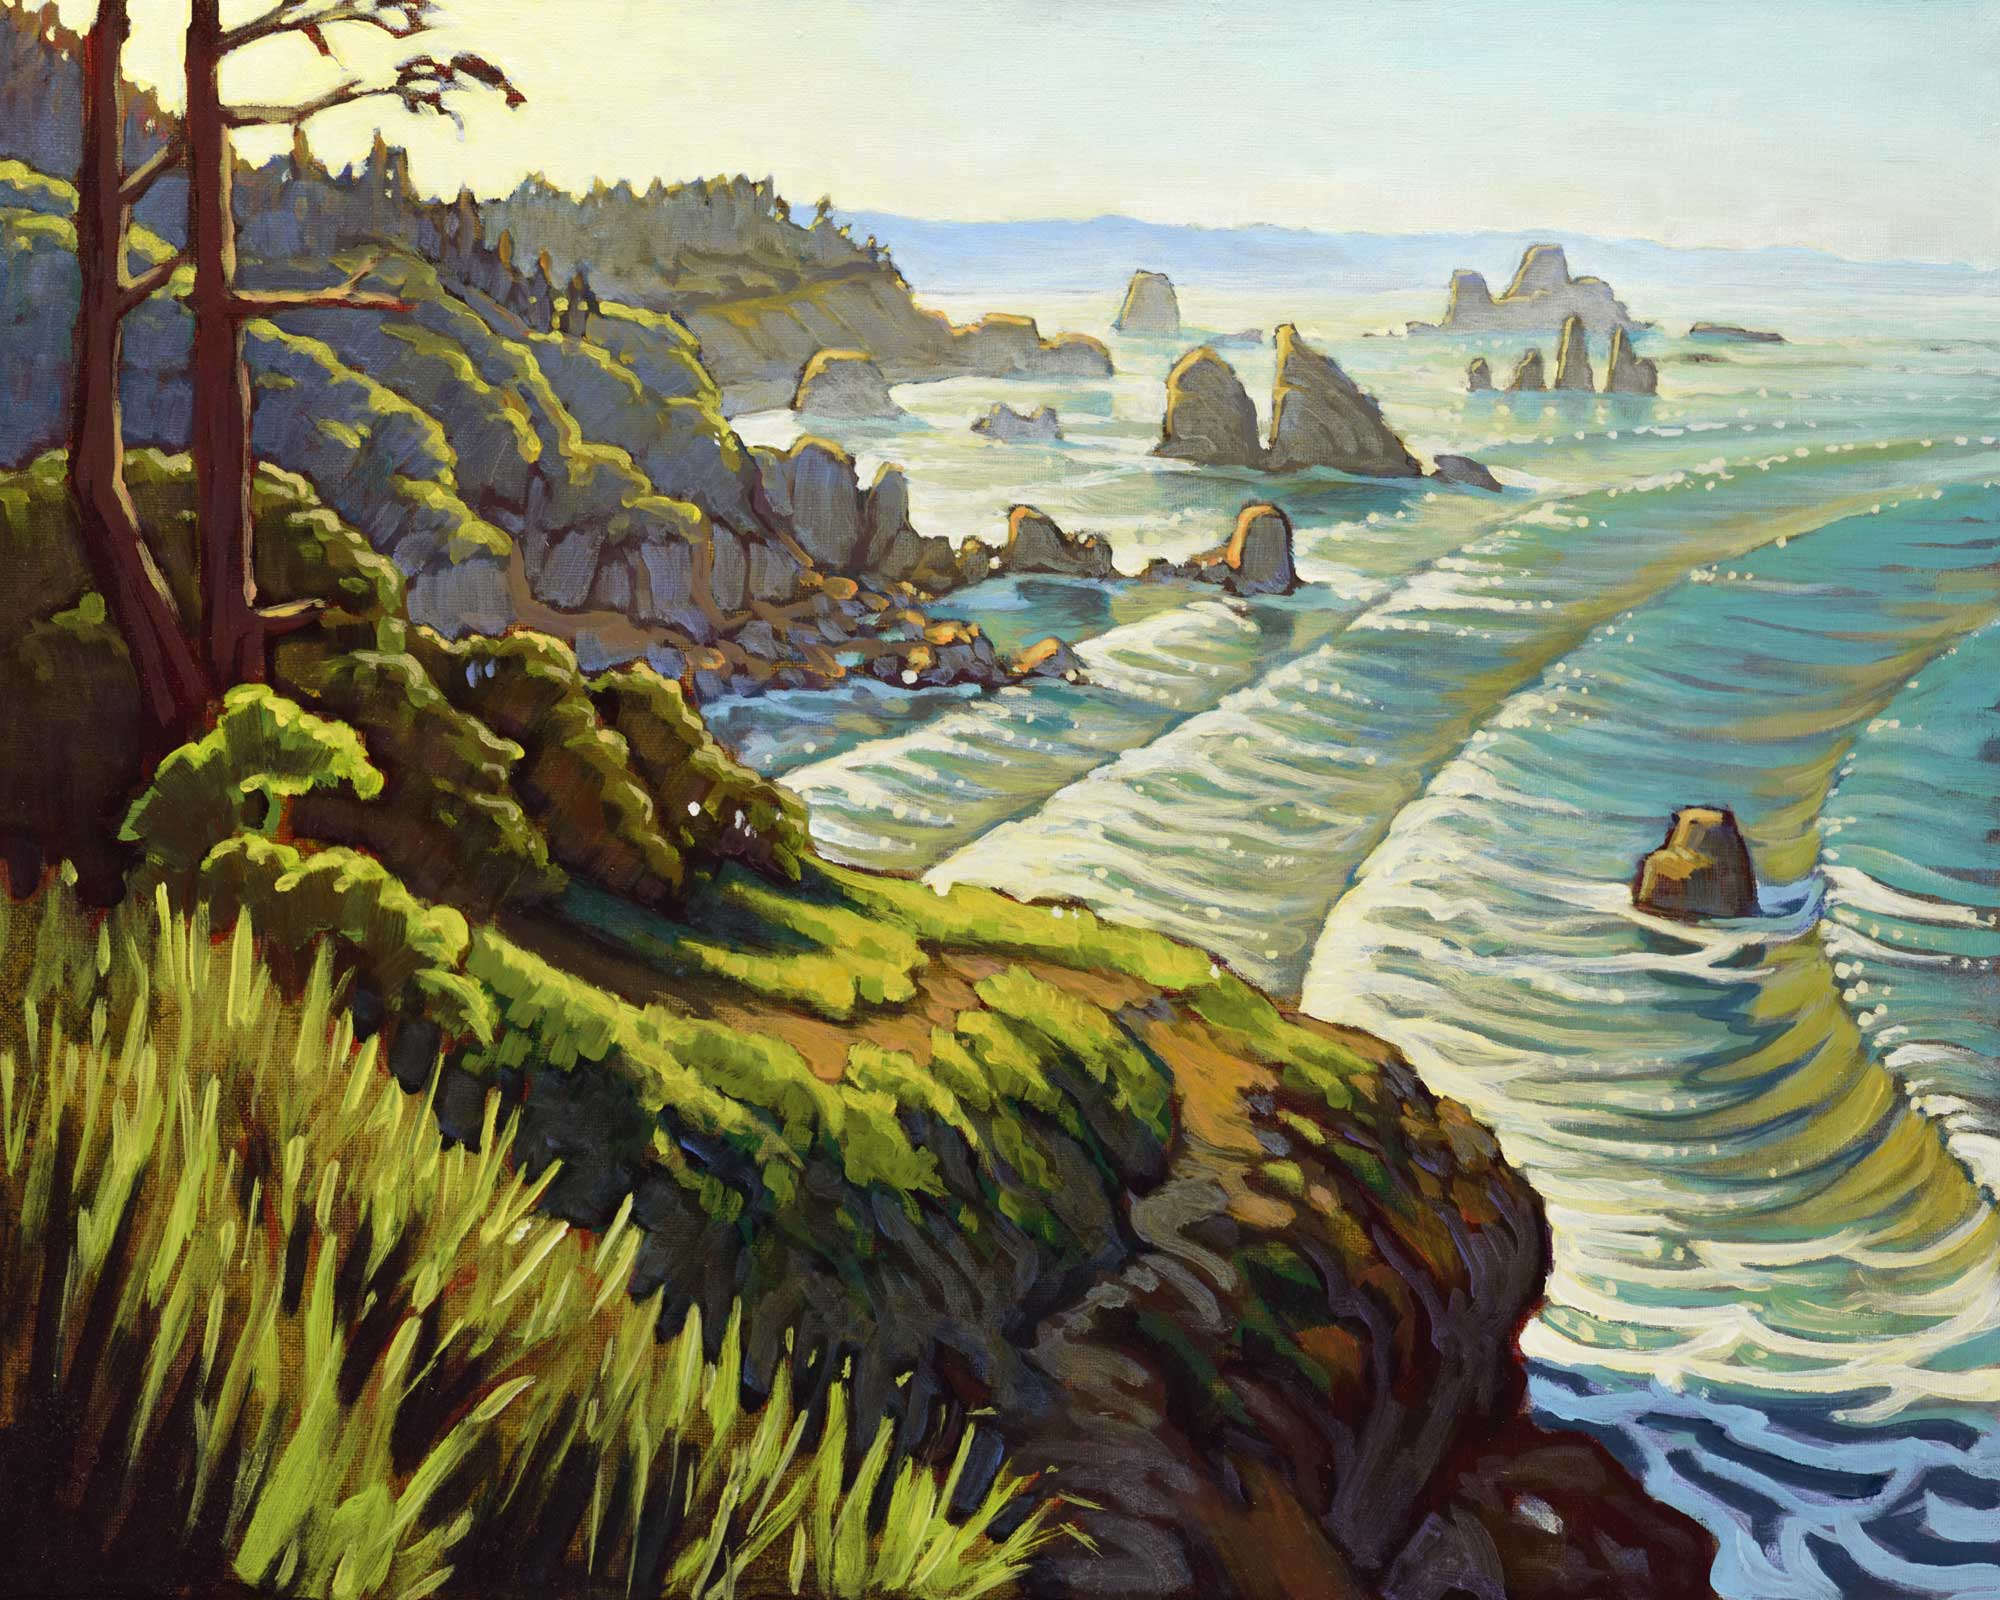 Plein air artwork from the Trinidad coast of Humboldt county in northern California